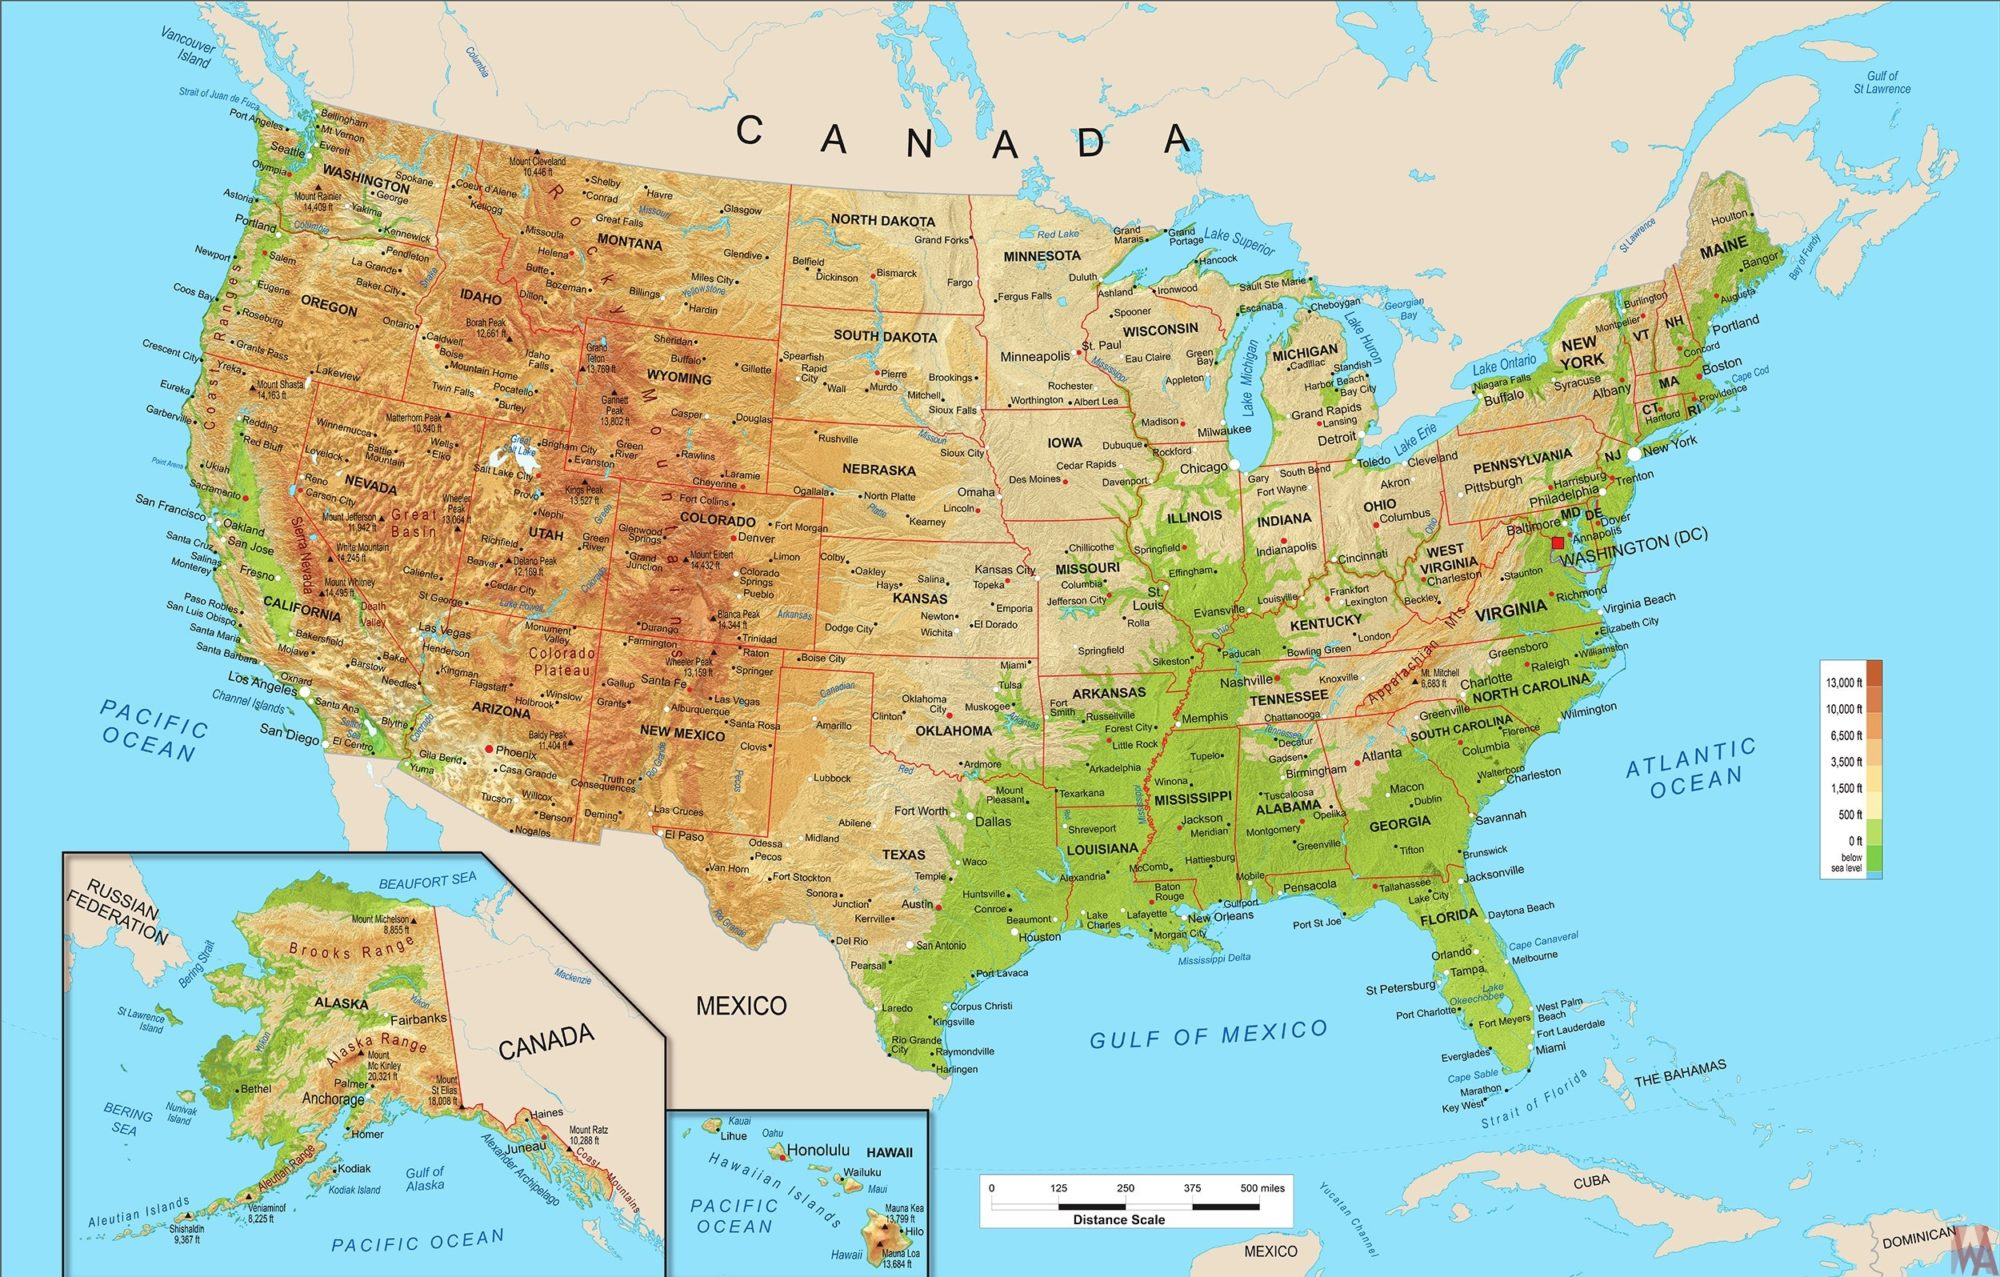 Geographical Map Of America.Large Political Physical Geographical Map Of United States Of